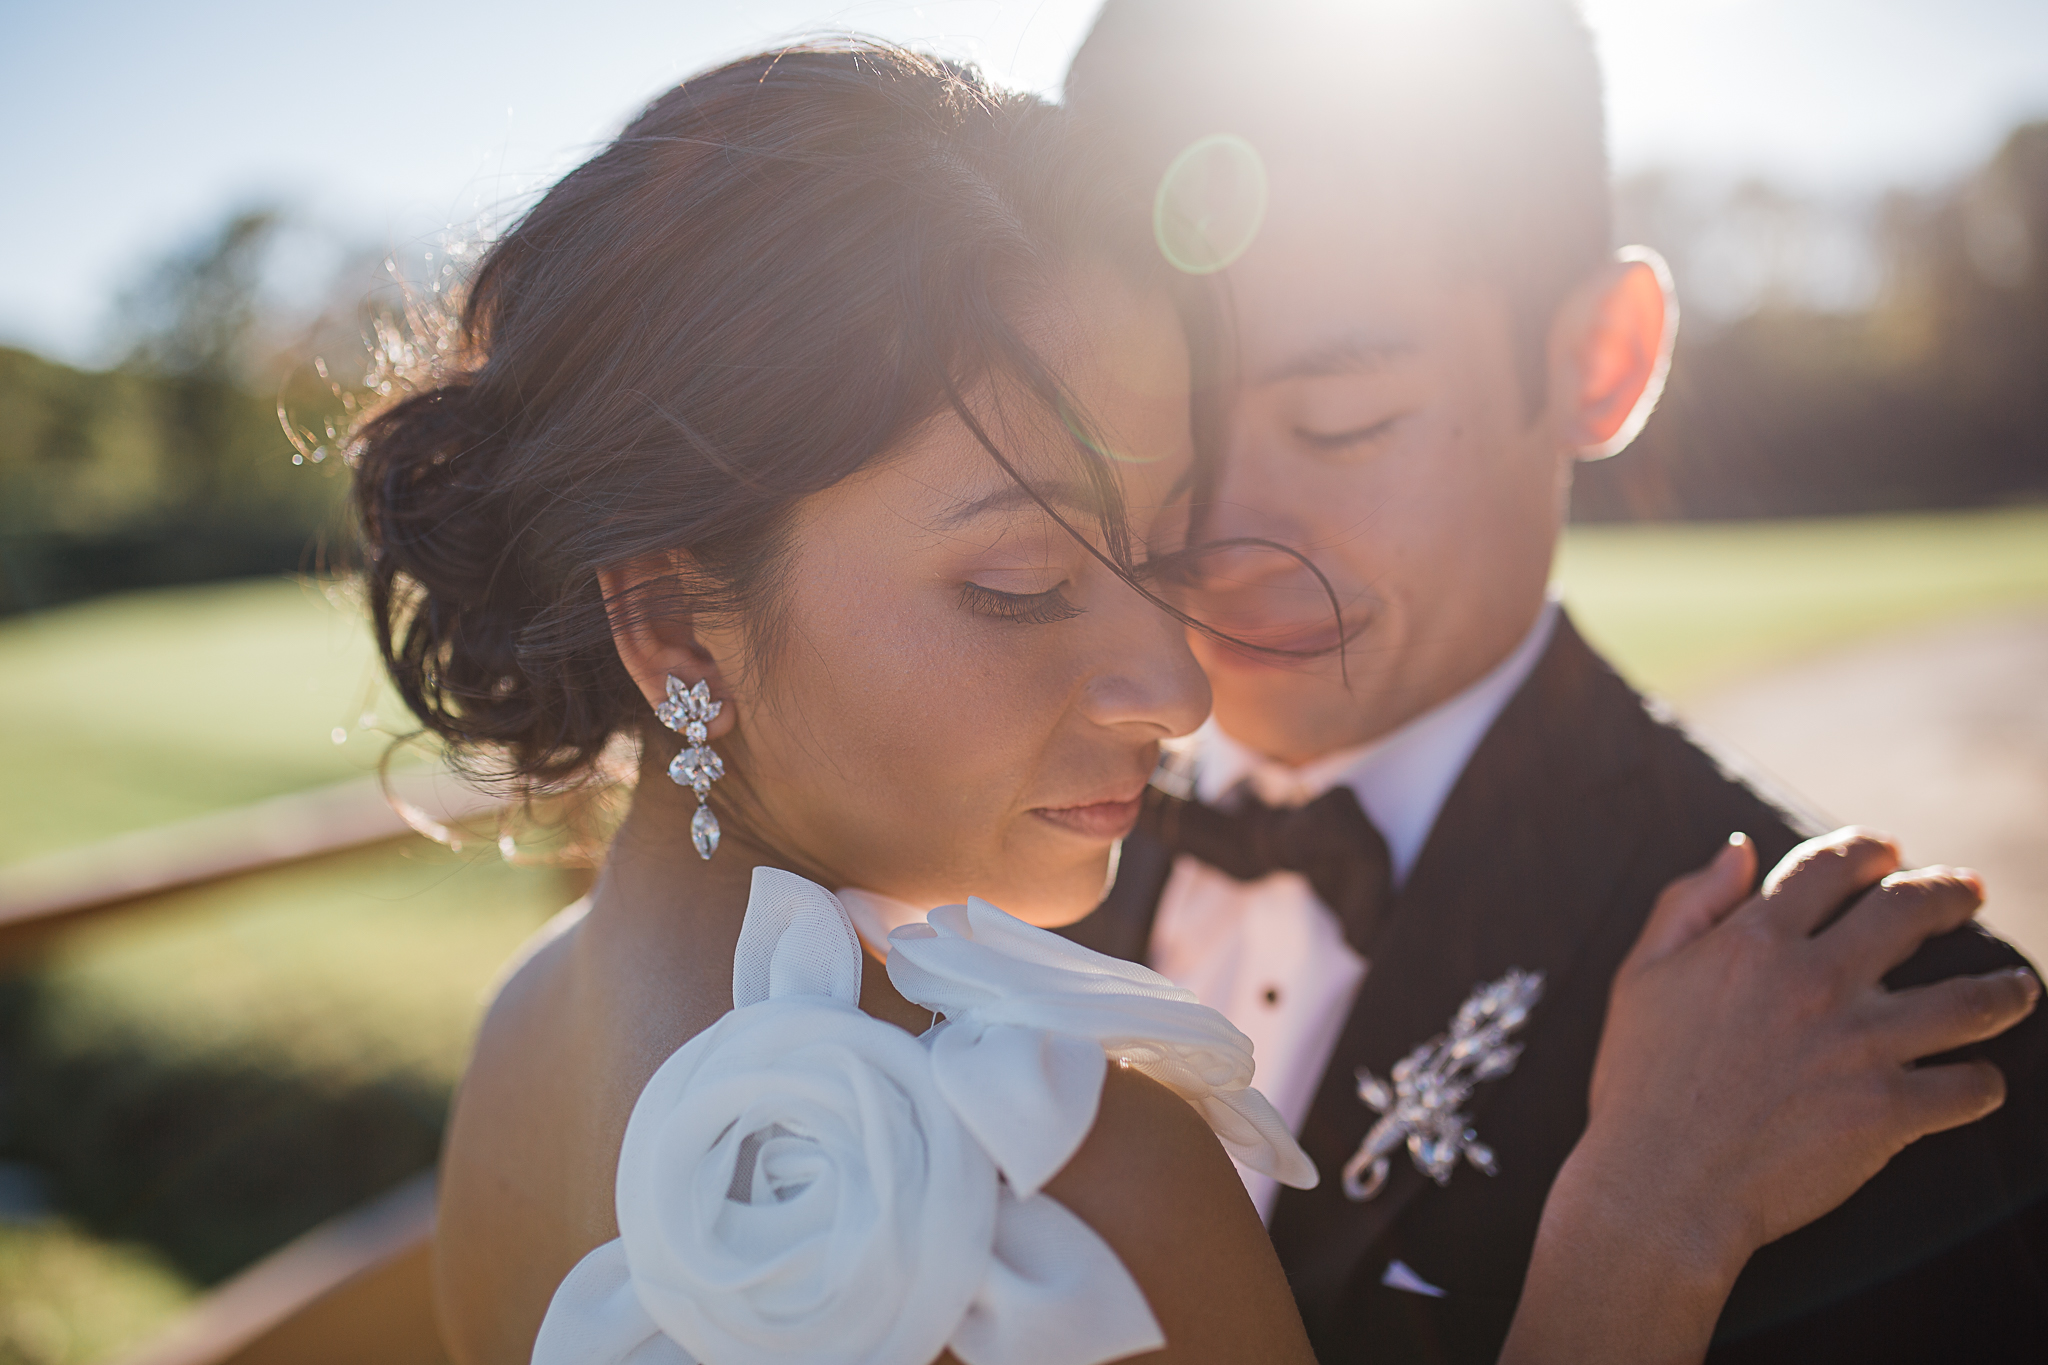 bride and groom intimate pose outdoors